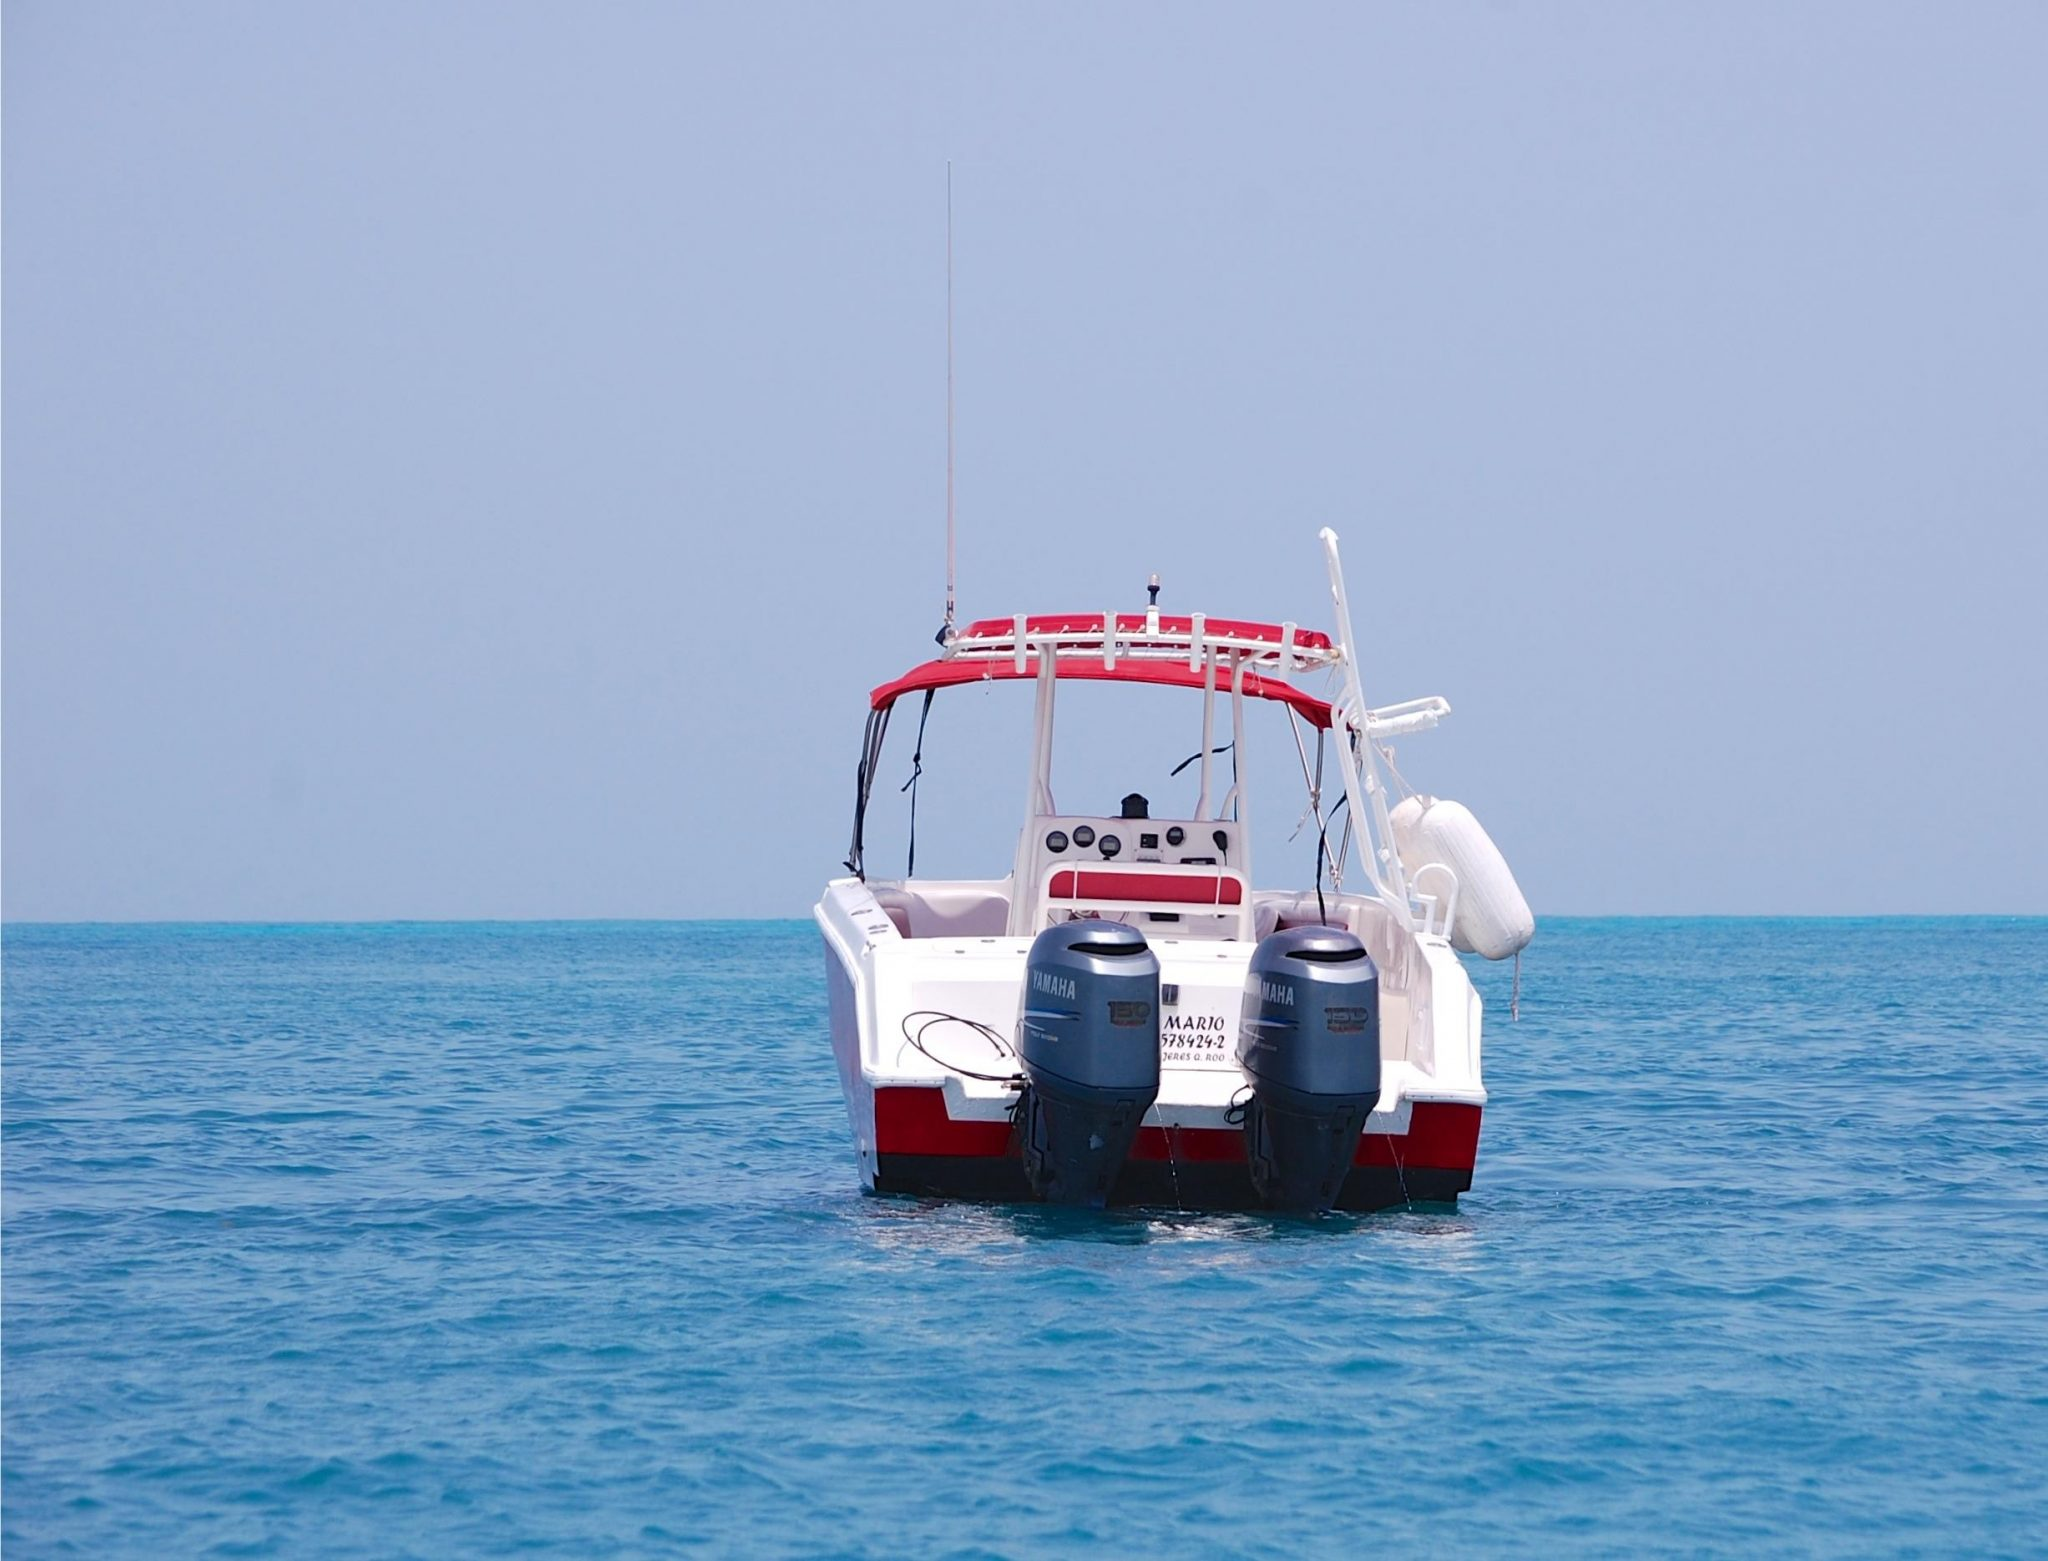 Yacht rentals in cancun small yacht for rent economic boats for rent in cancun and puerto morelos isla mujeres whale shark tour